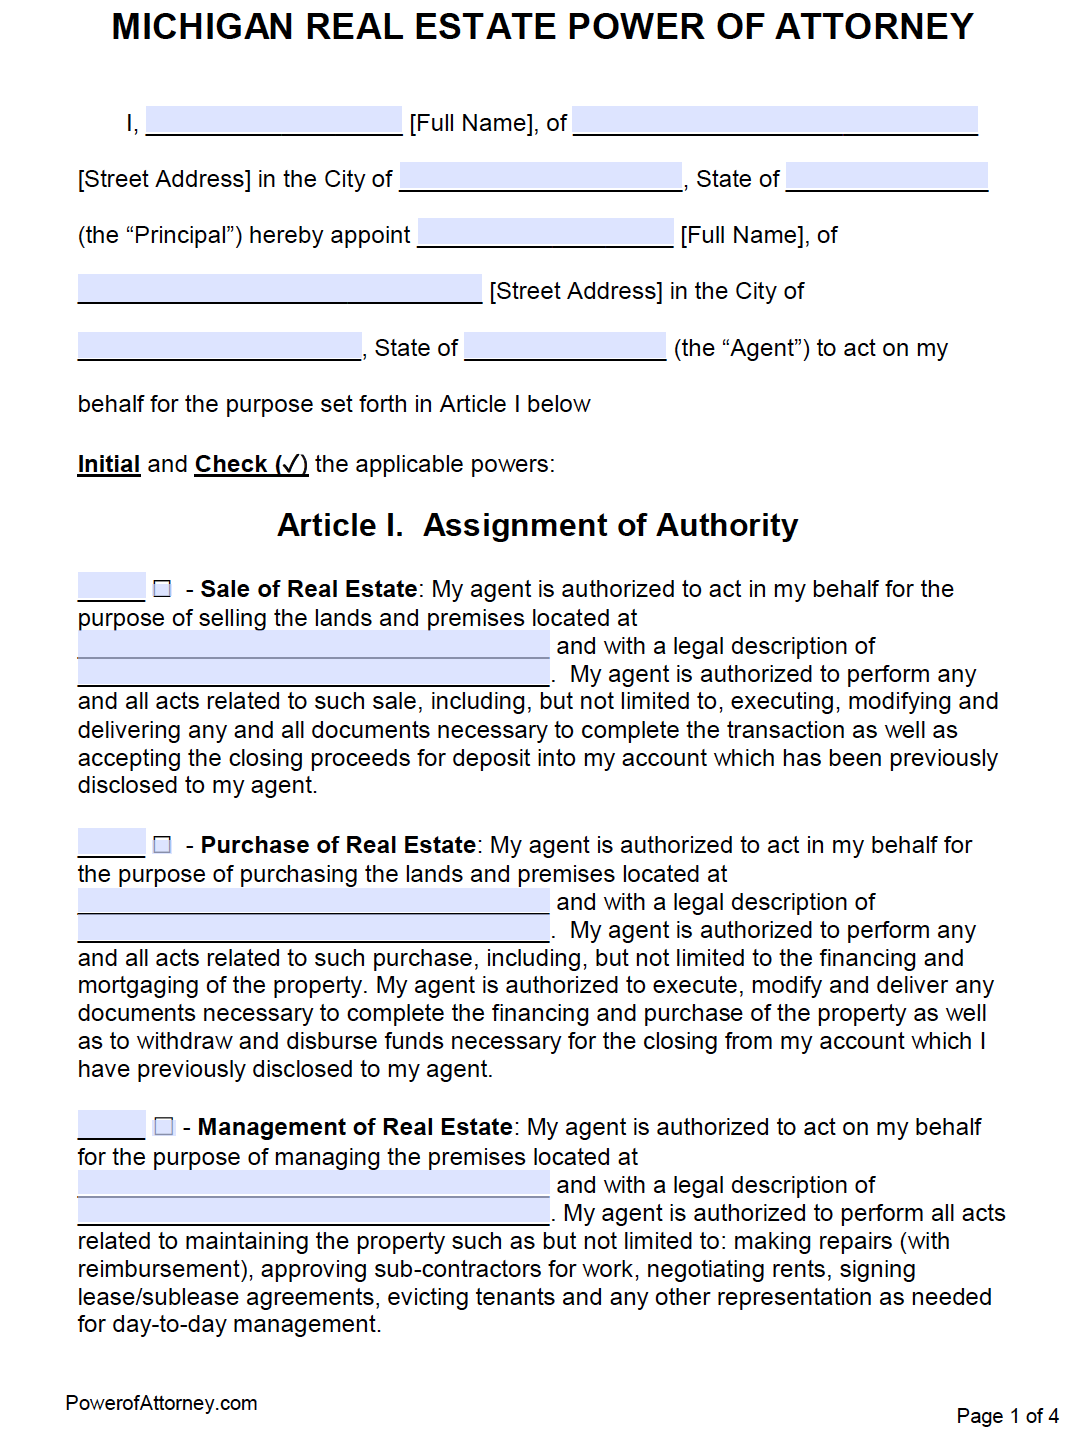 Free Real Estate Power of Attorney Michigan Form – PDF – Word